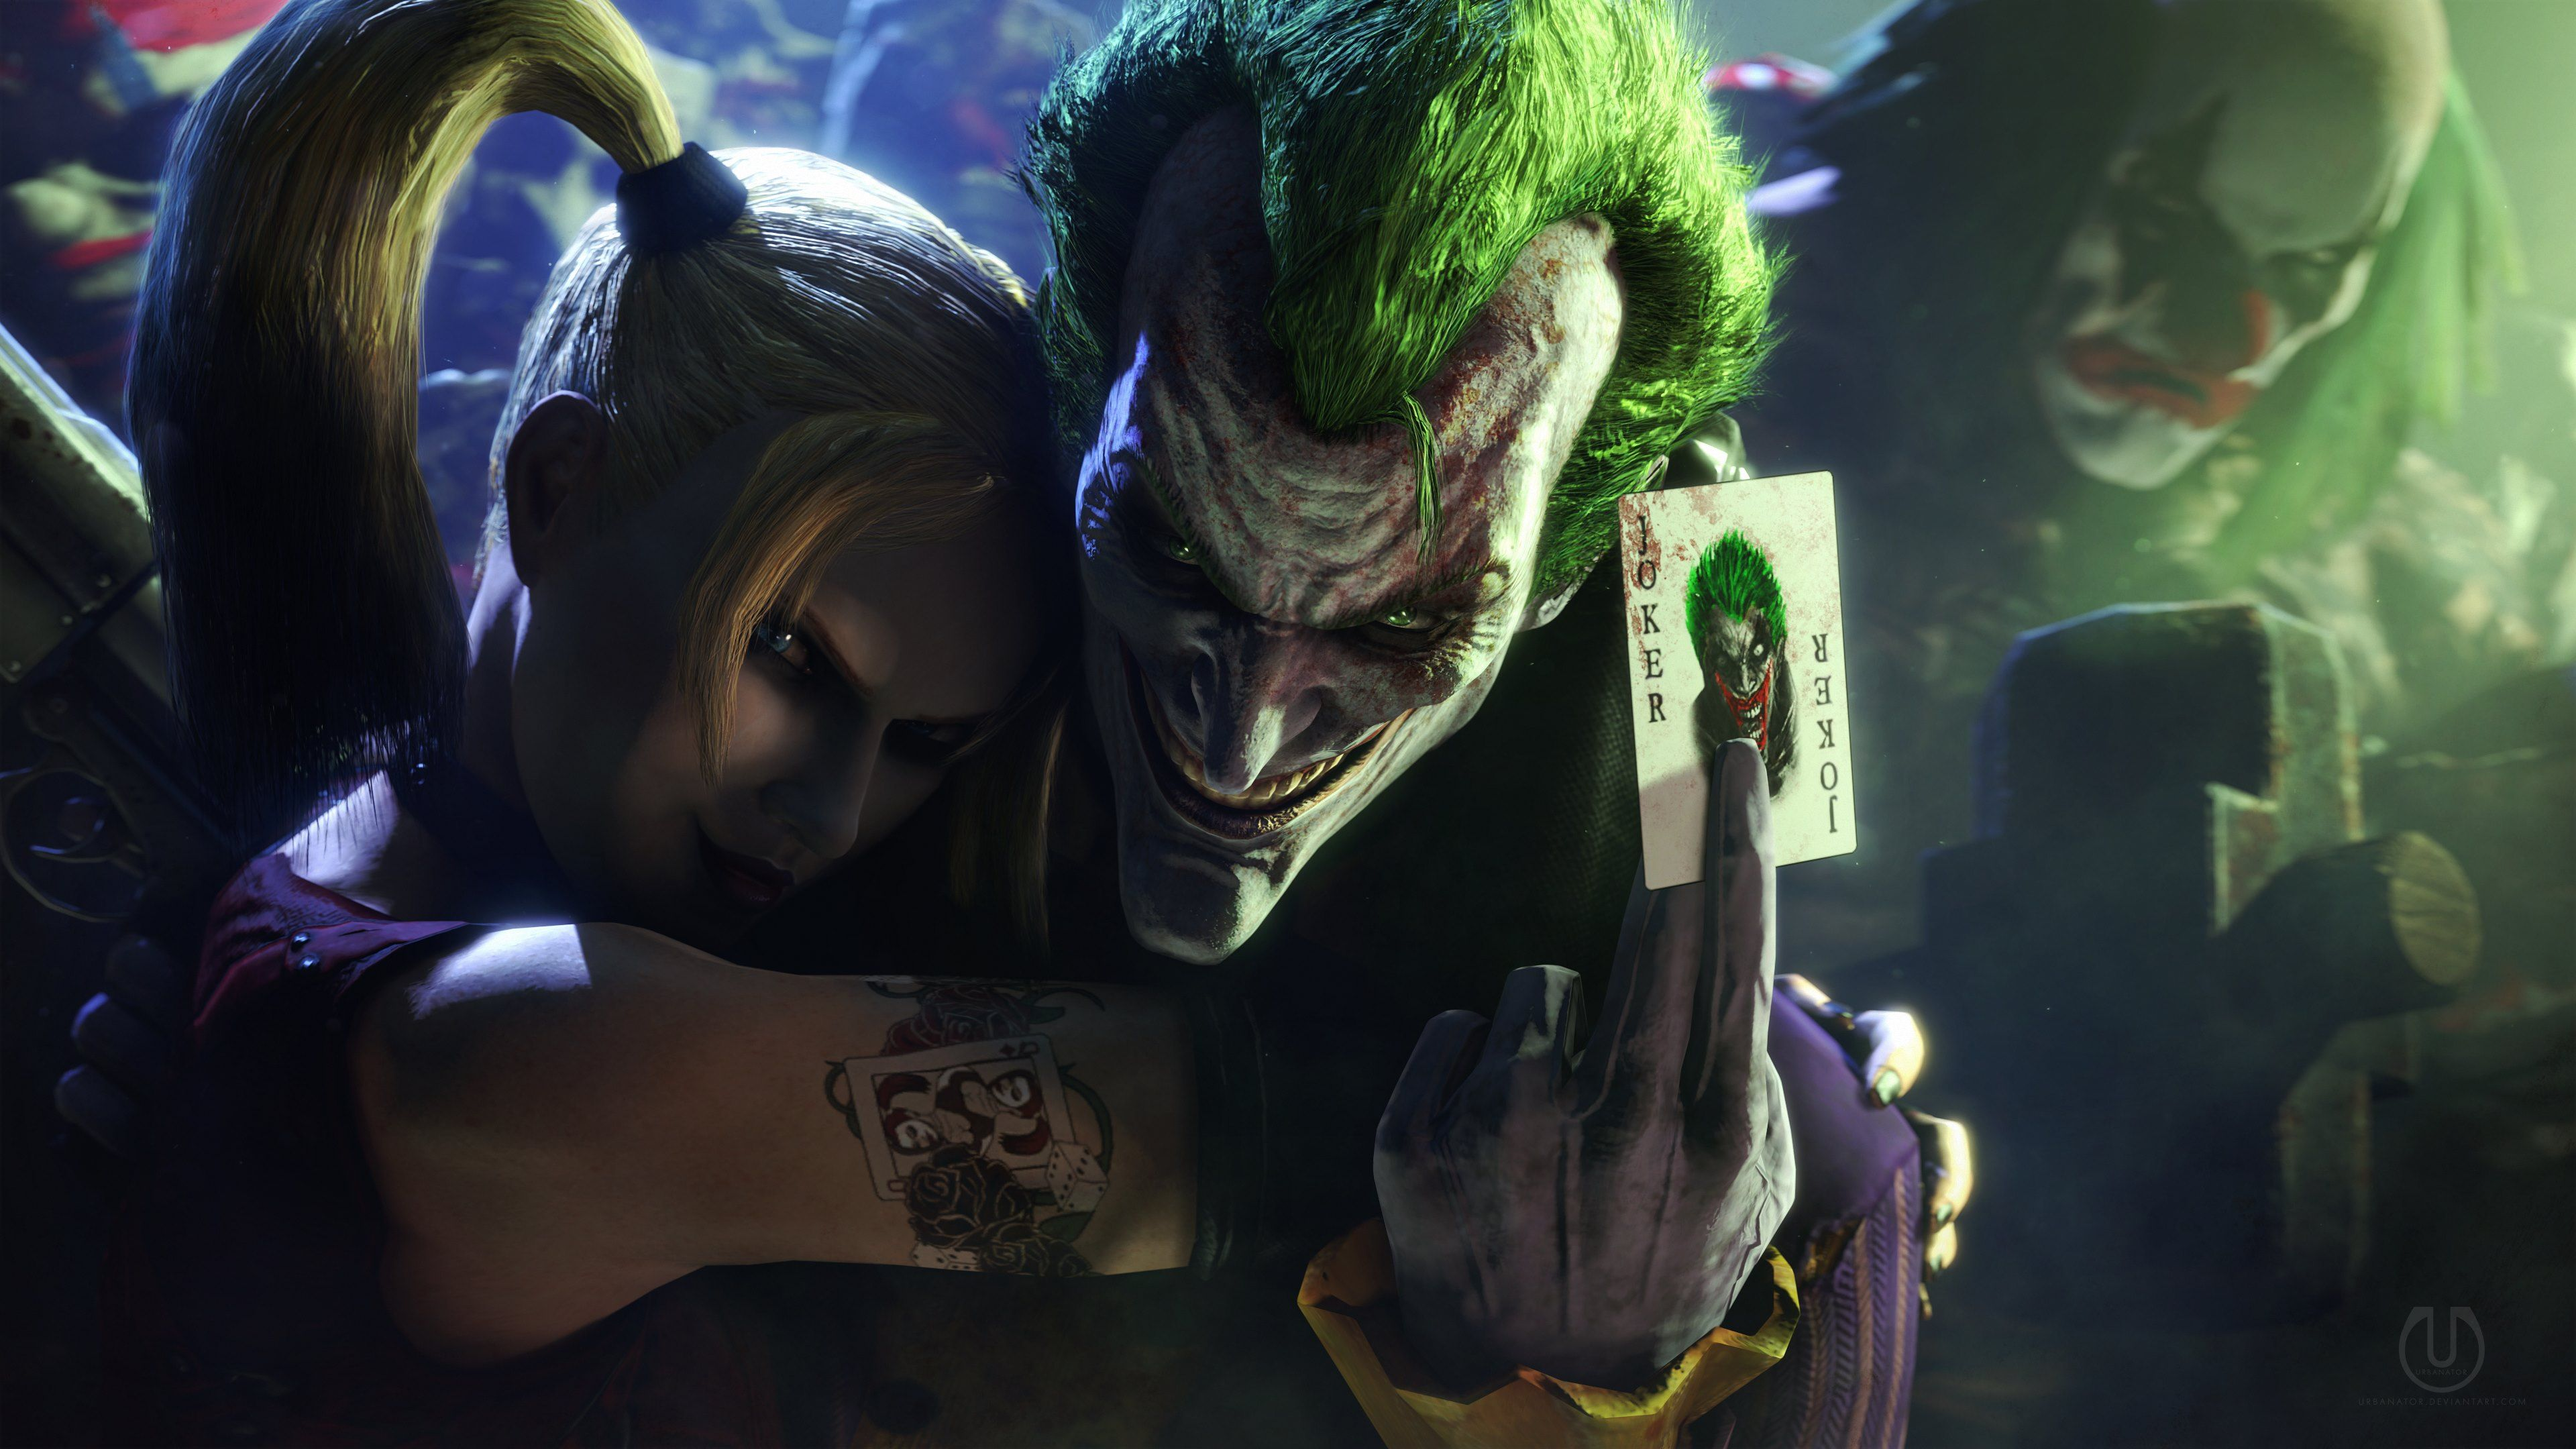 Joker And Harley Quinn Injustice Wallpapers Top Free Joker And